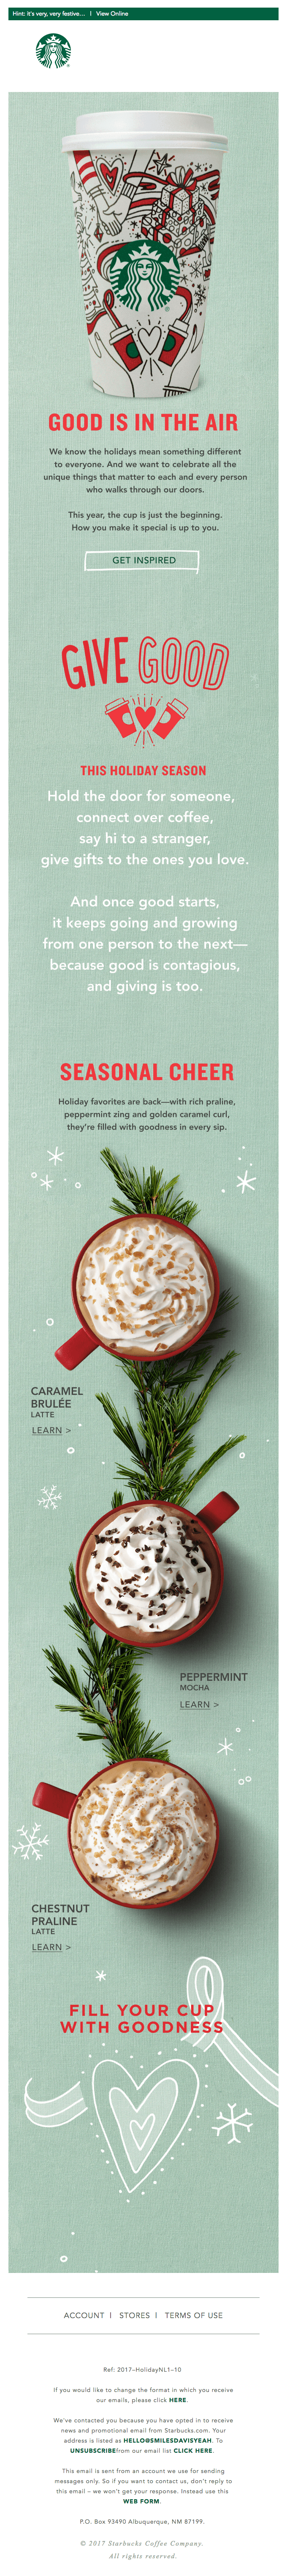 Starbucks holiday newsletter